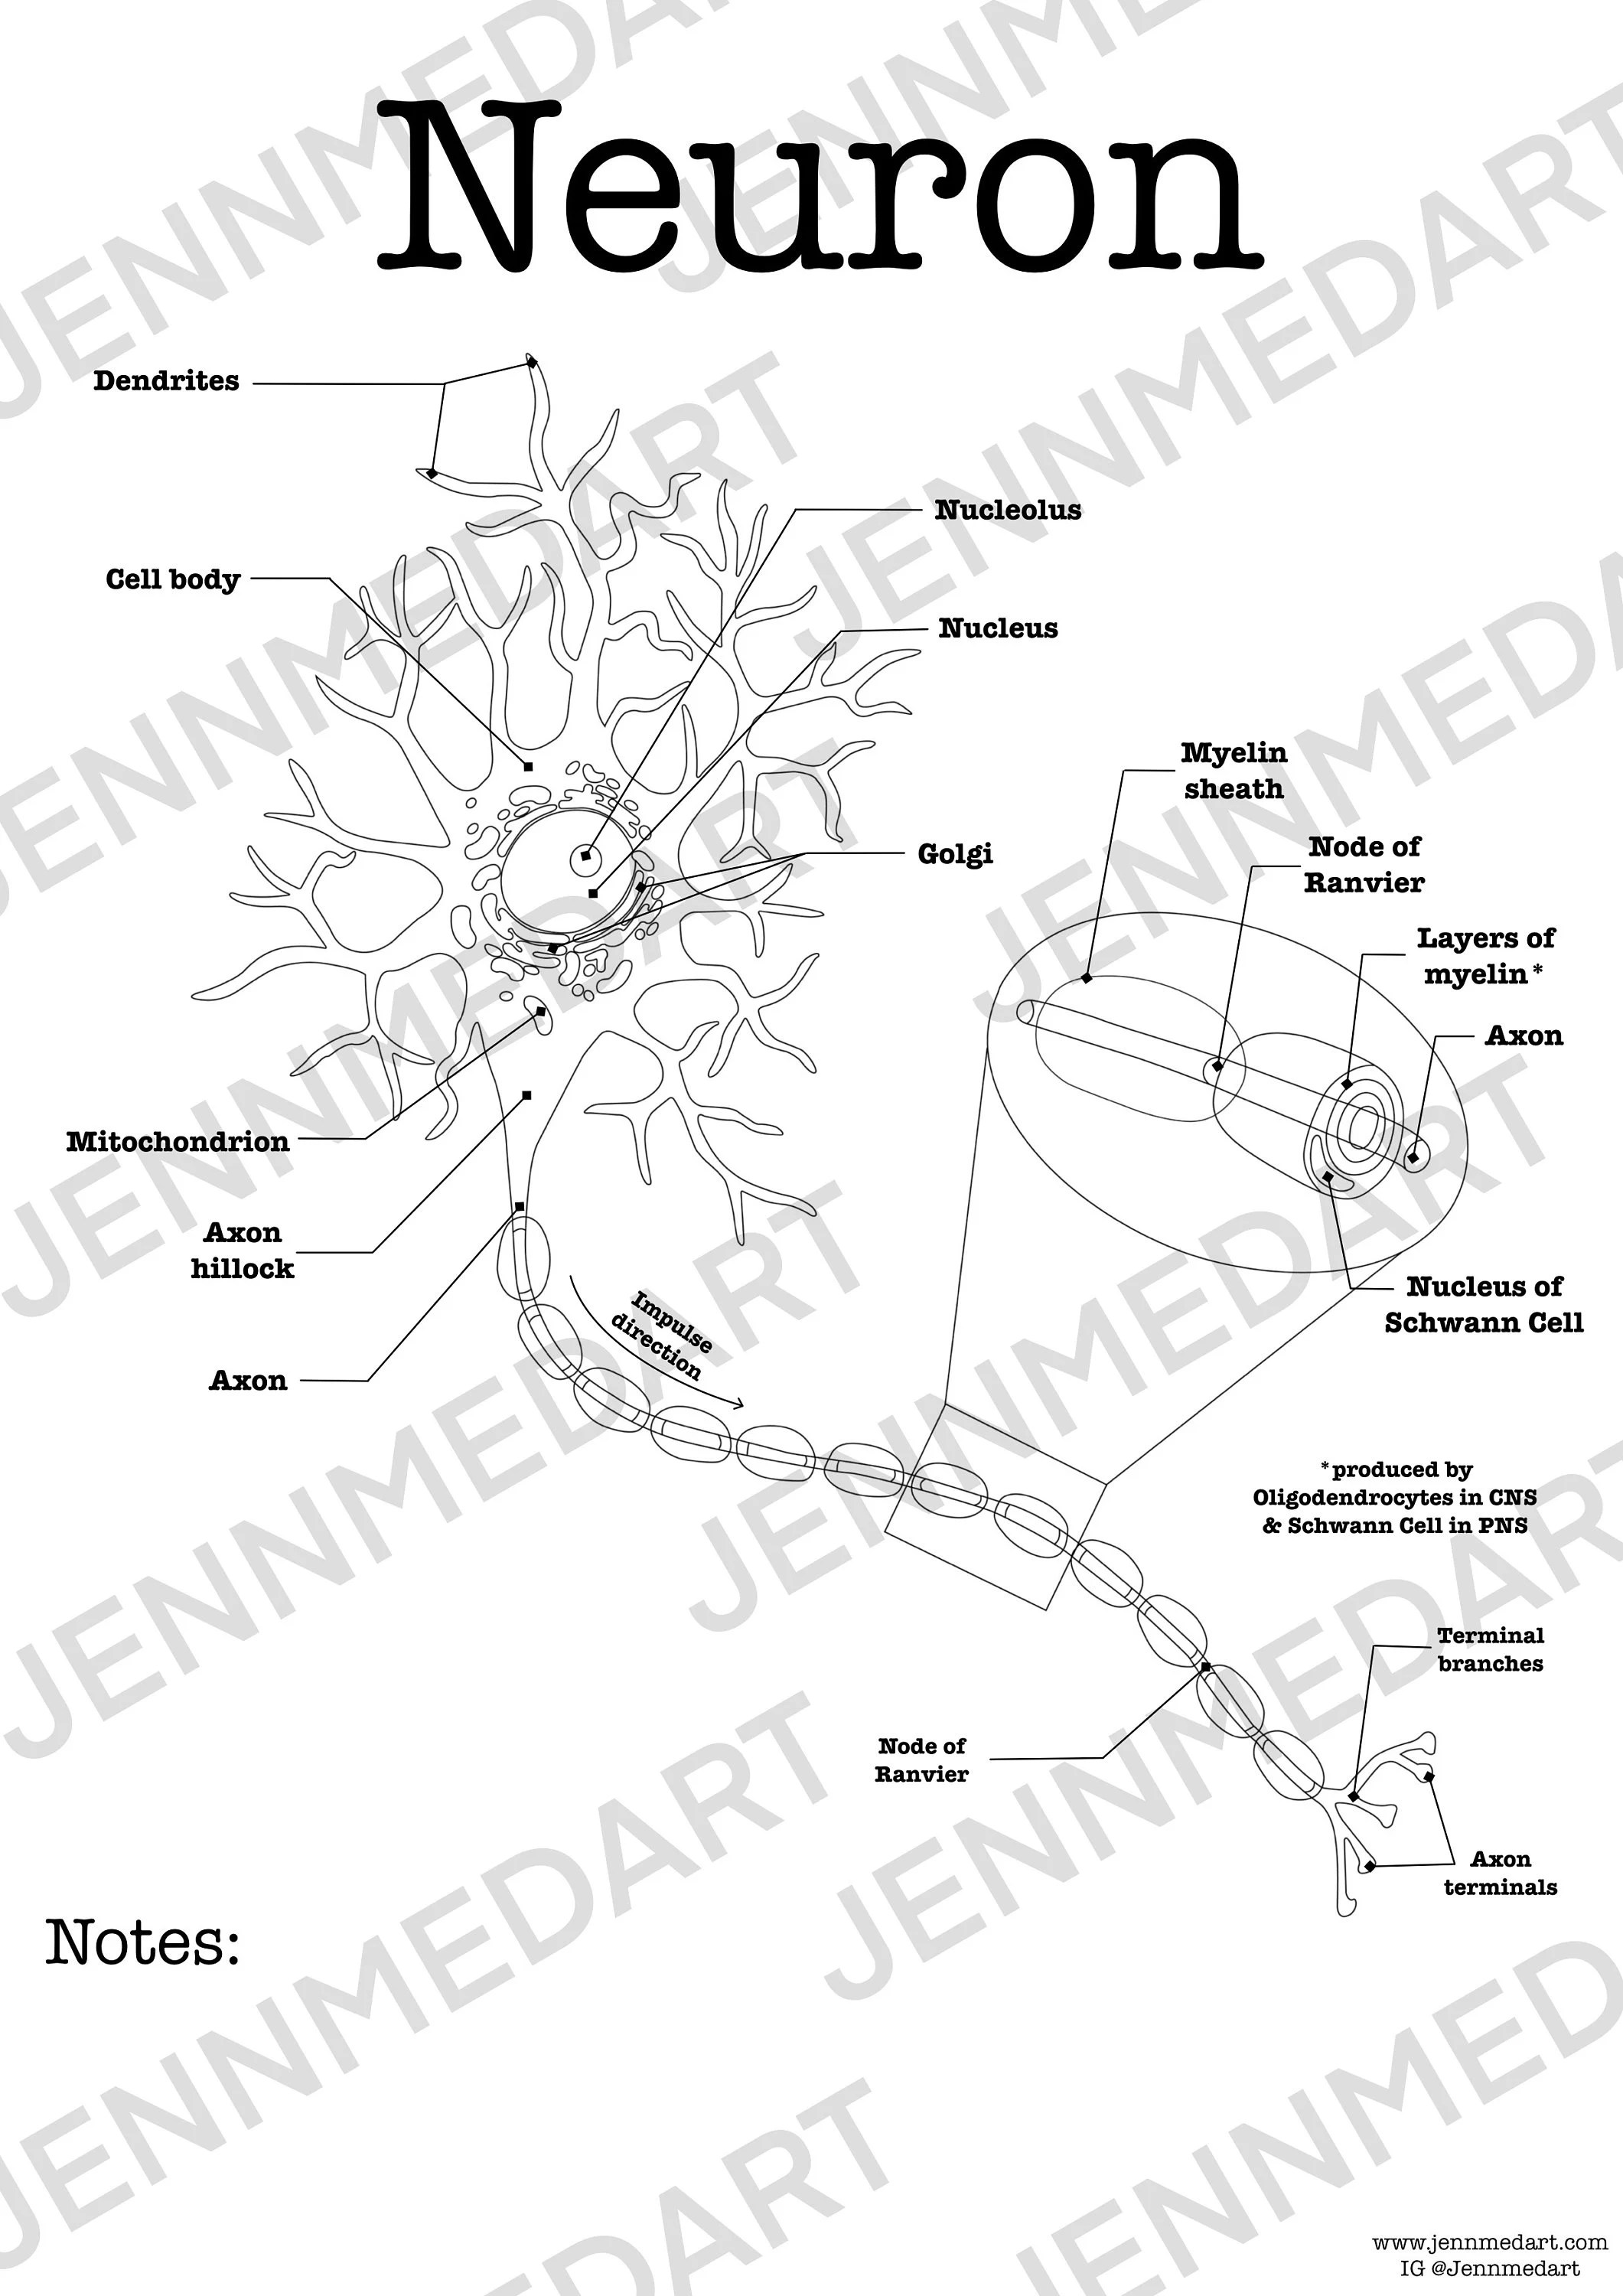 Neuron Anatomy Worksheet 3 In 1 Set A Labeled Coloring Page